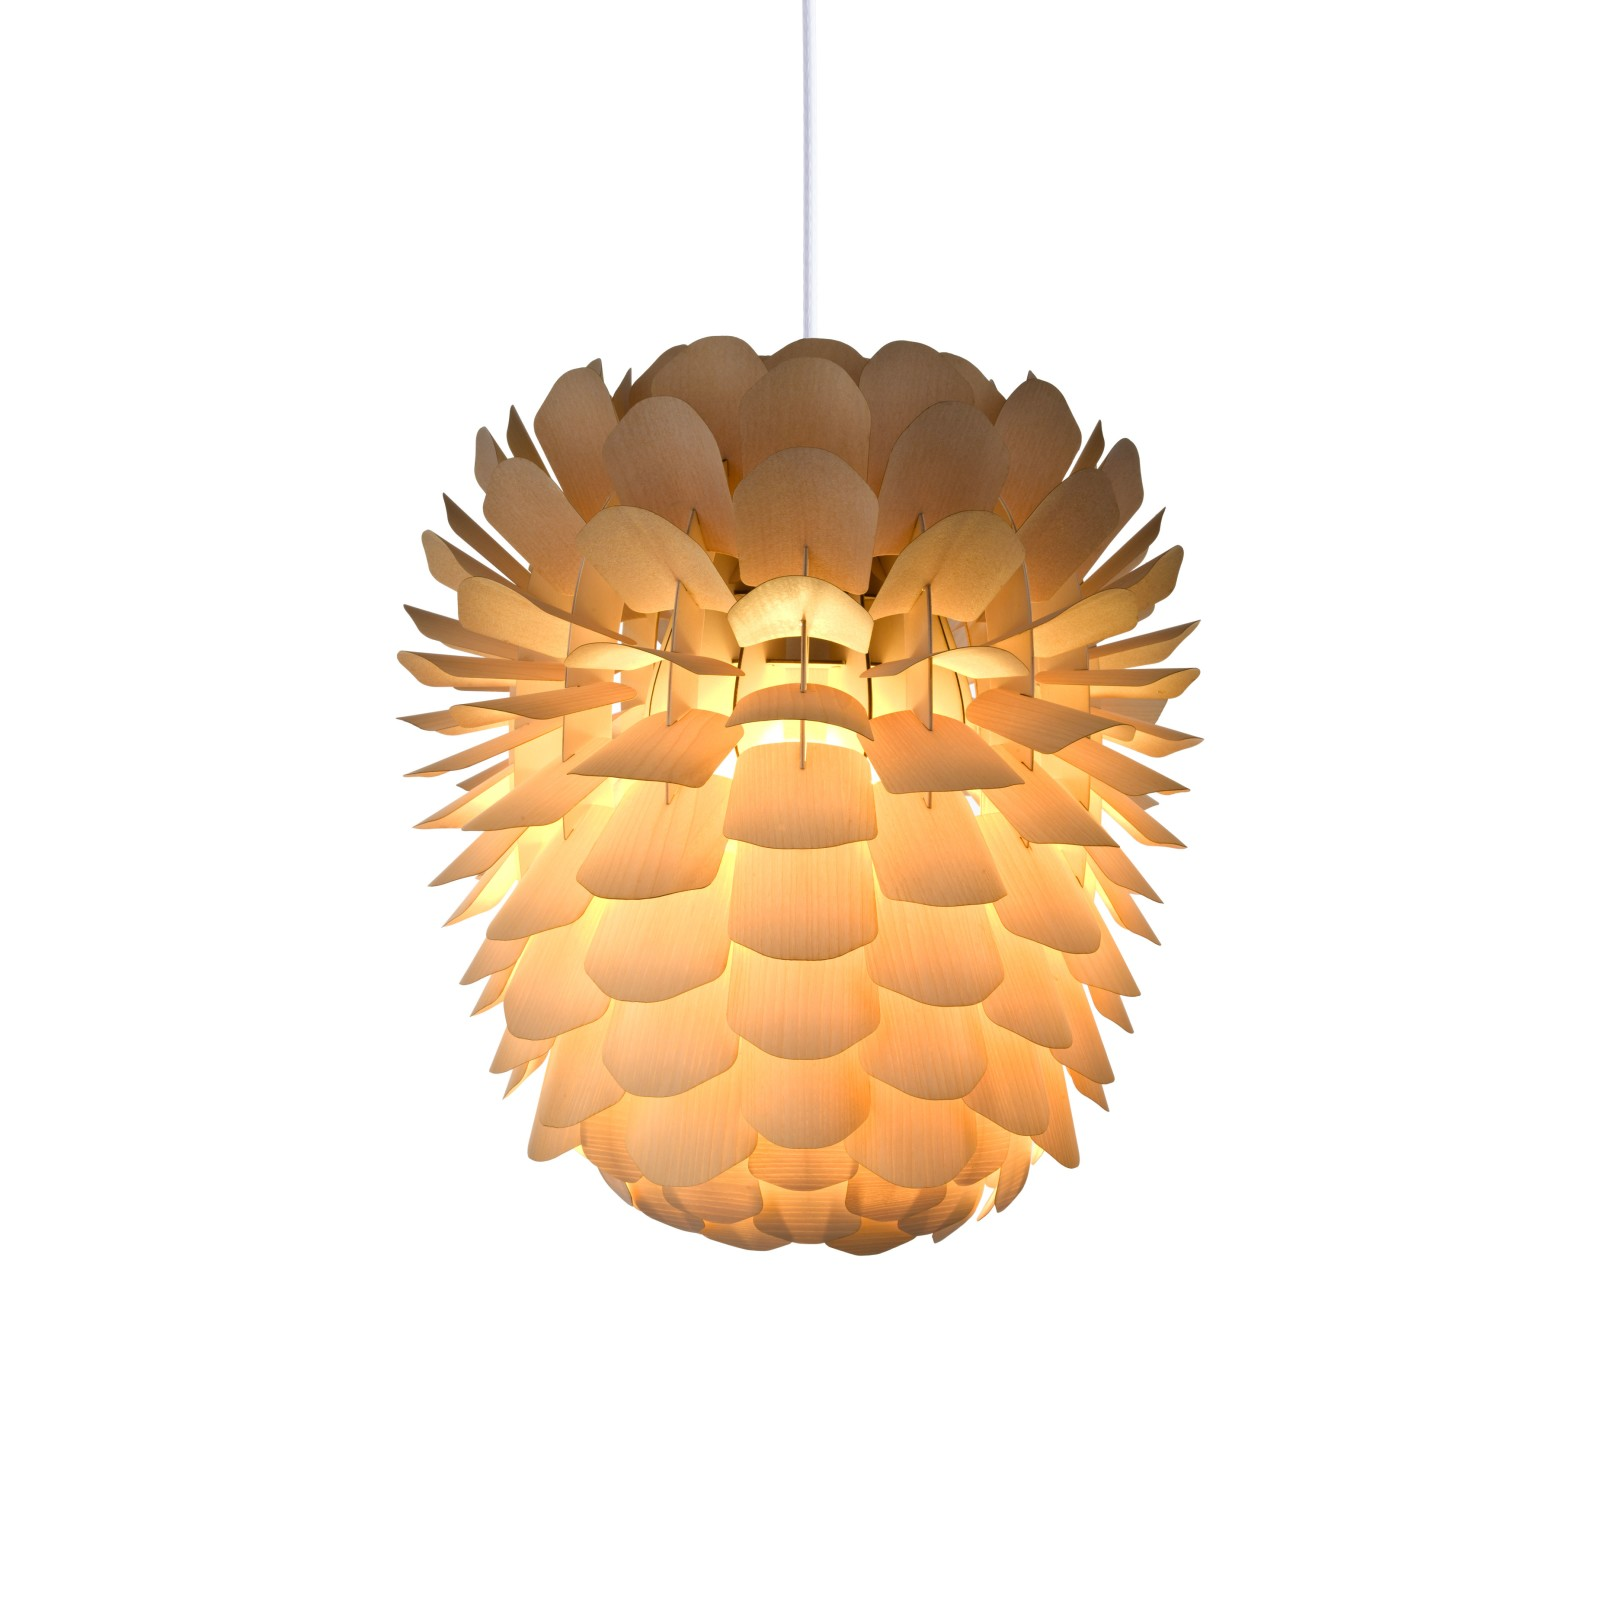 Zappy 'Small' Pendant light Ash